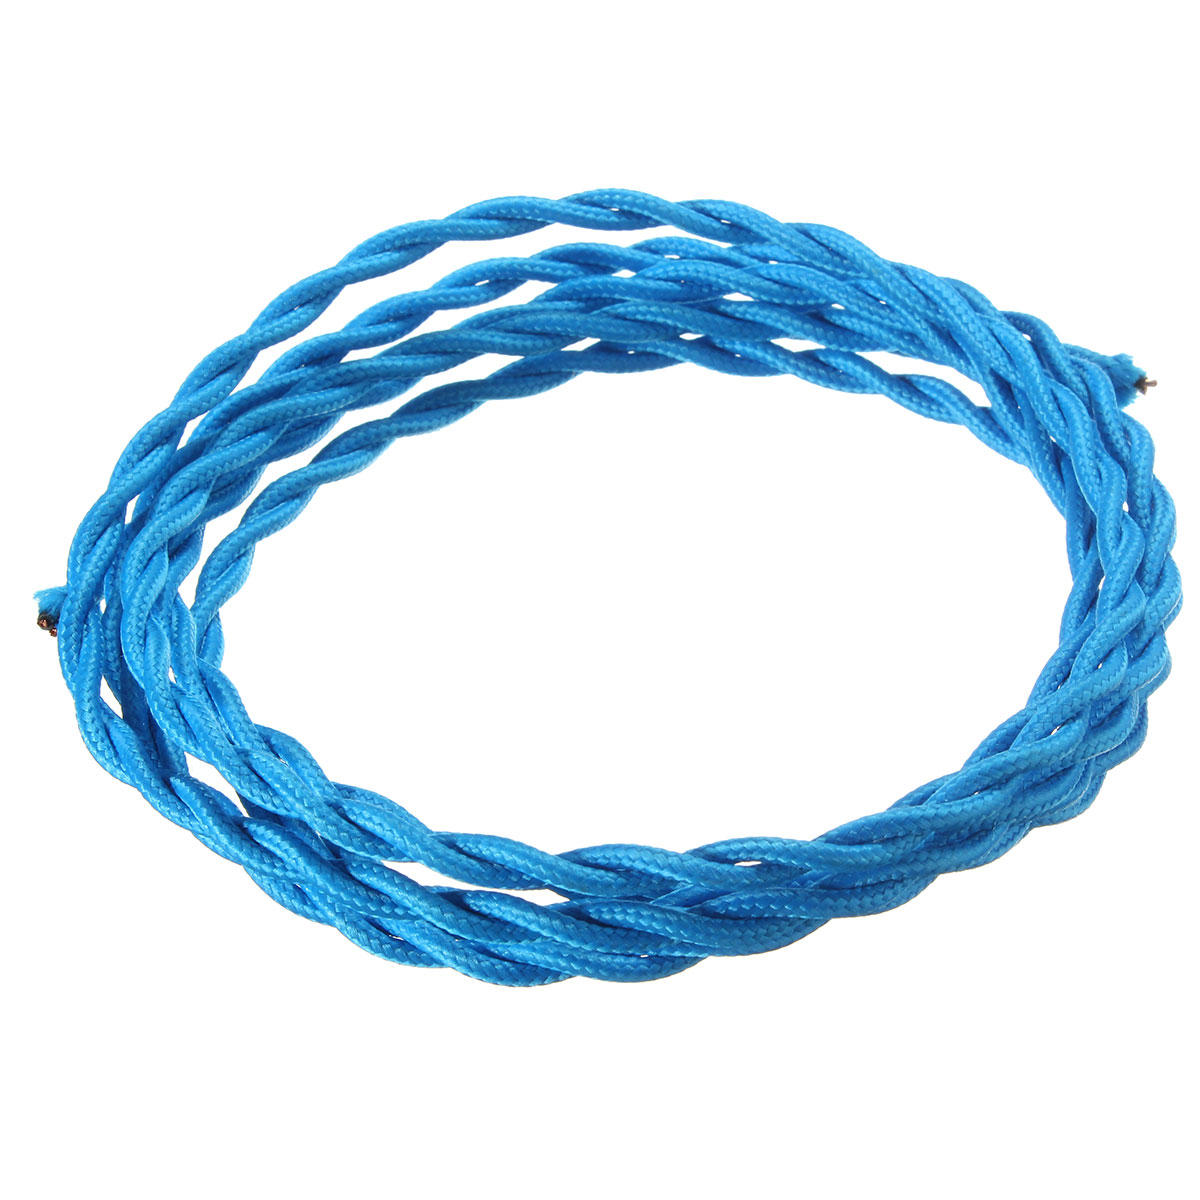 LED Light Vintage 0.75MM 2 Core Twist Braided Fabric Cable Wire Electric Cord for Pendant Lights 3M Light Color : Cyan-Blue